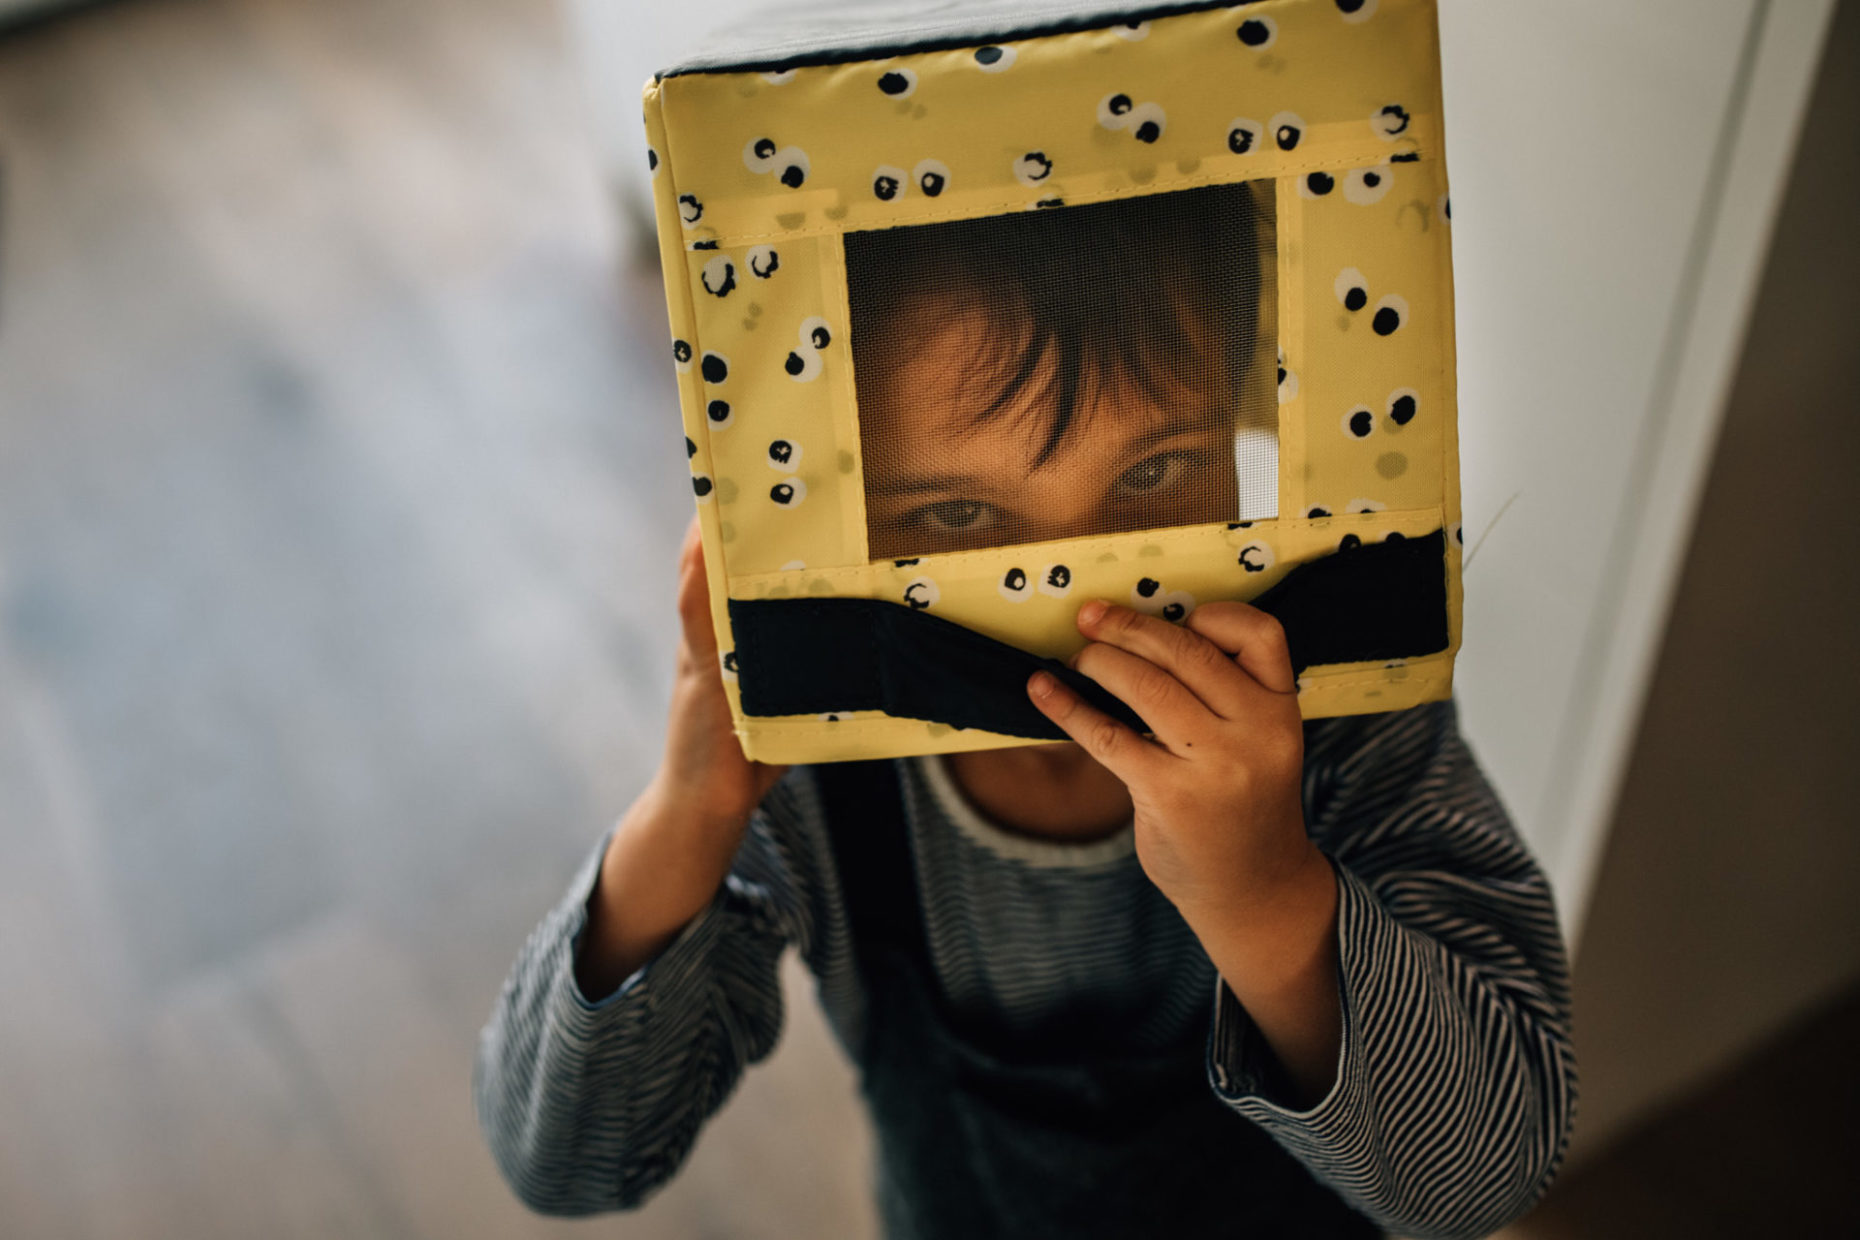 Child with a box on his head, his eyes are looking at the camera. Amsterdam portrait.